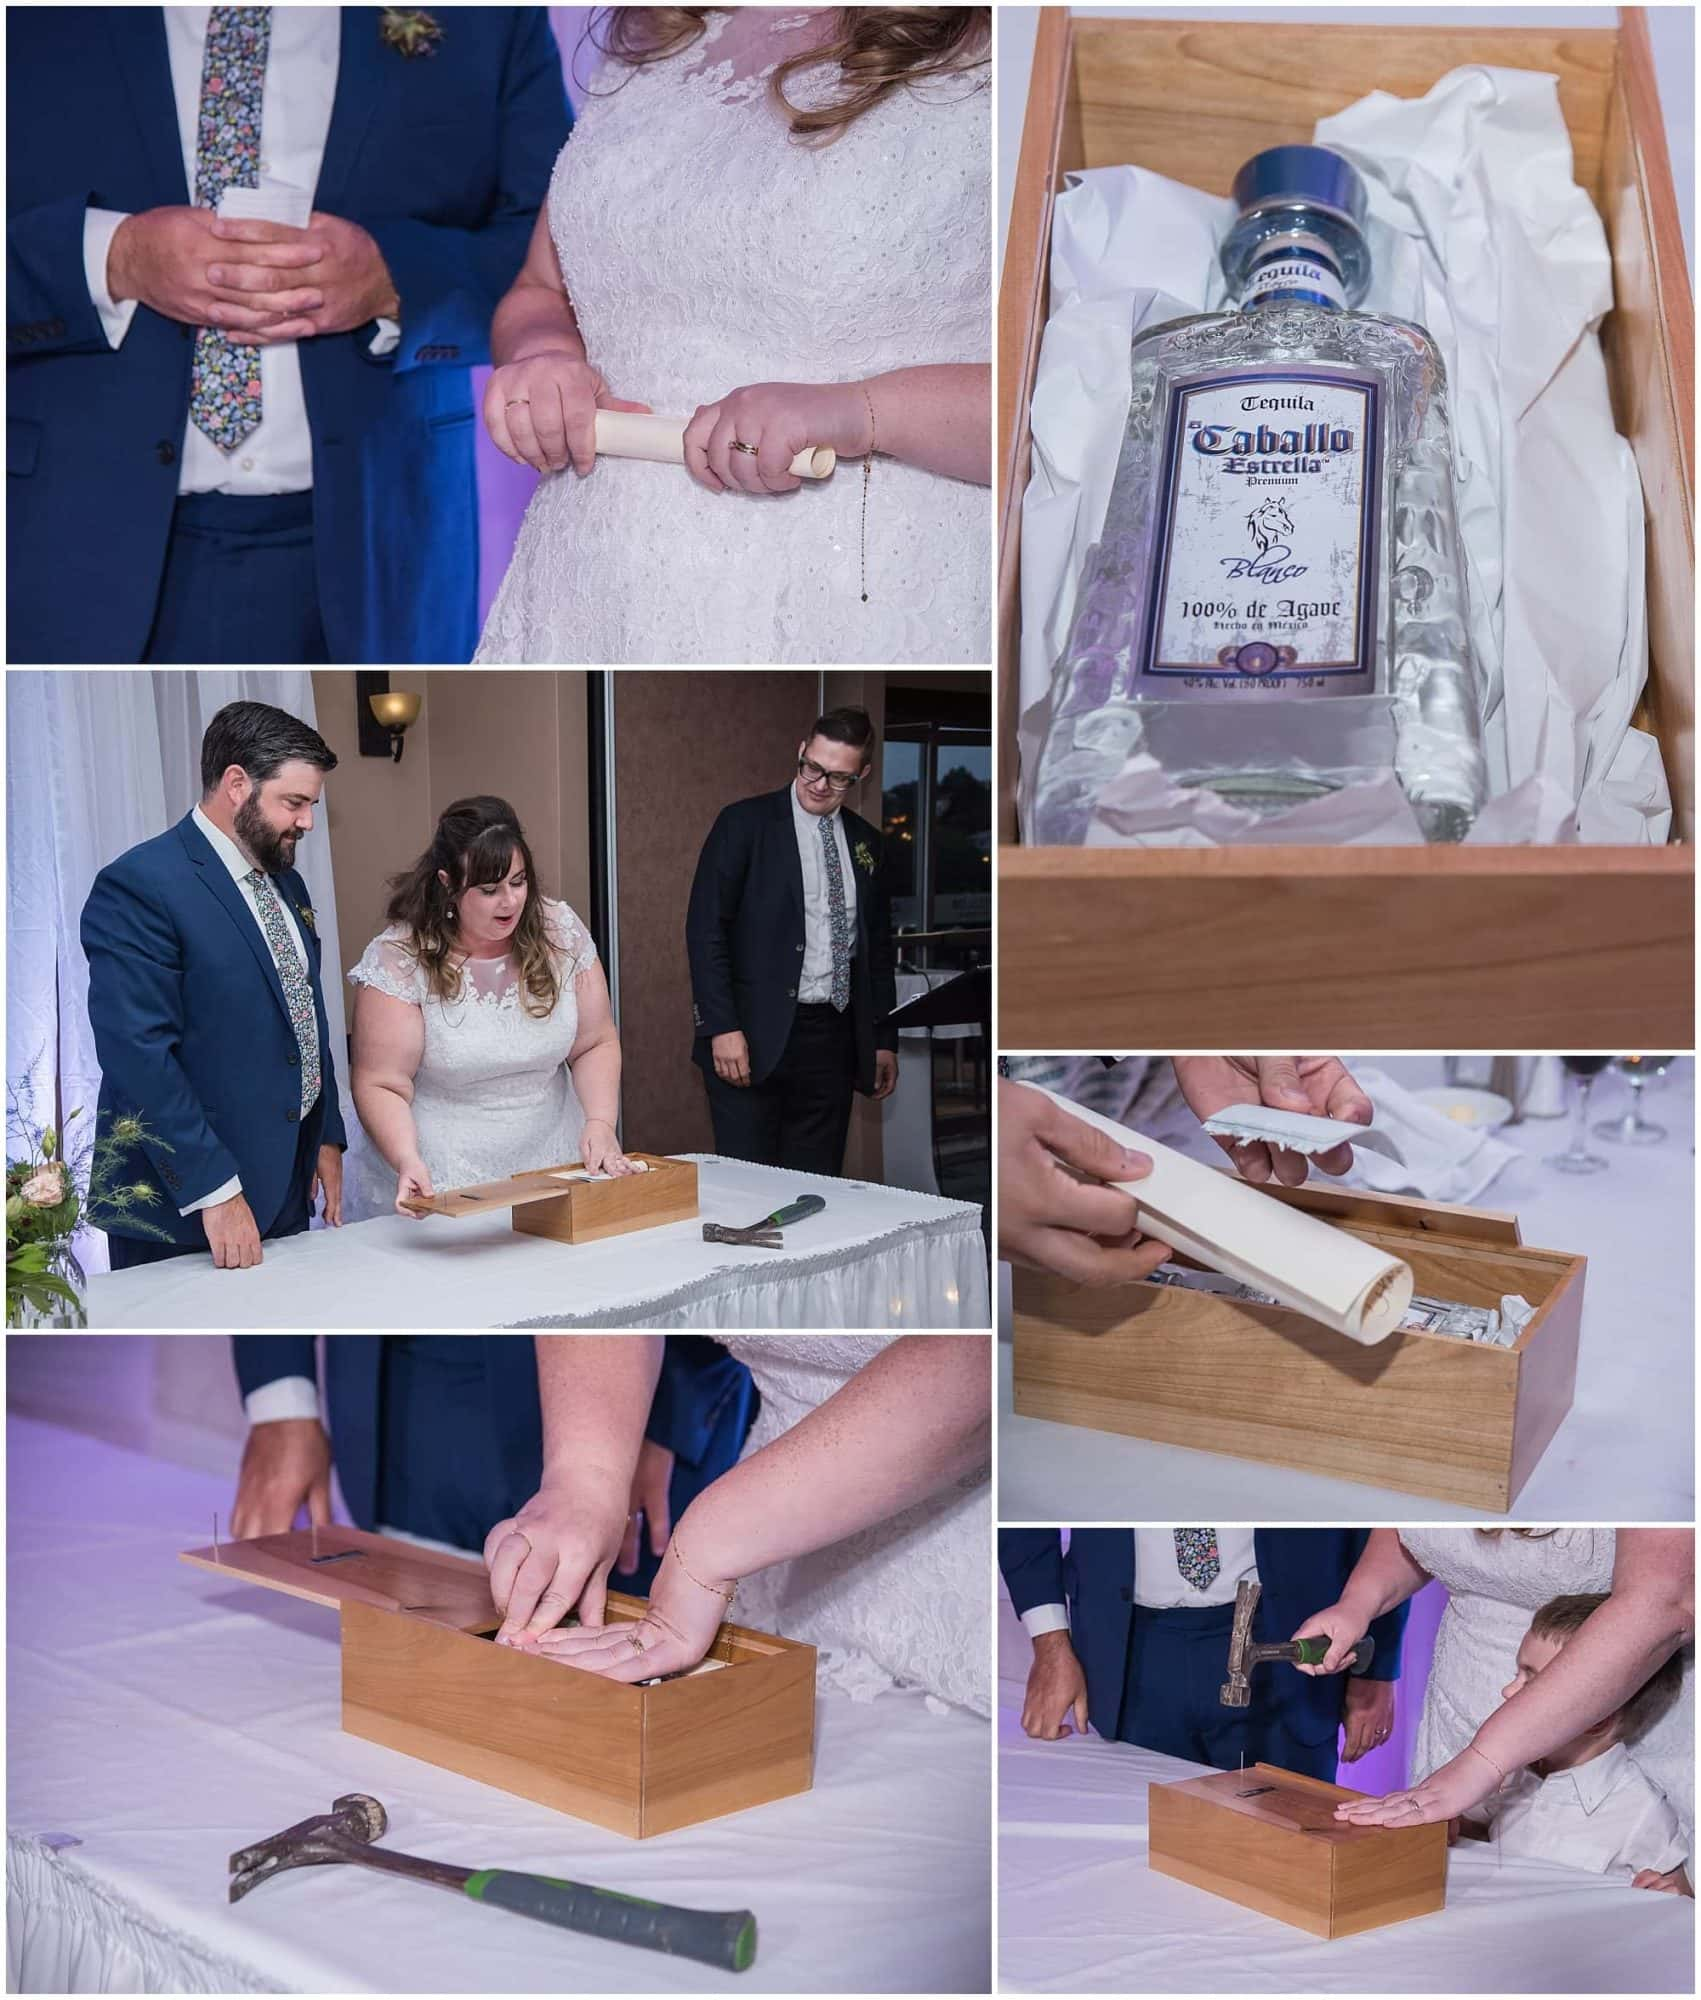 The bride and groom place their love letters and a bottle of wine in a box and seal it with a hammer and nails.